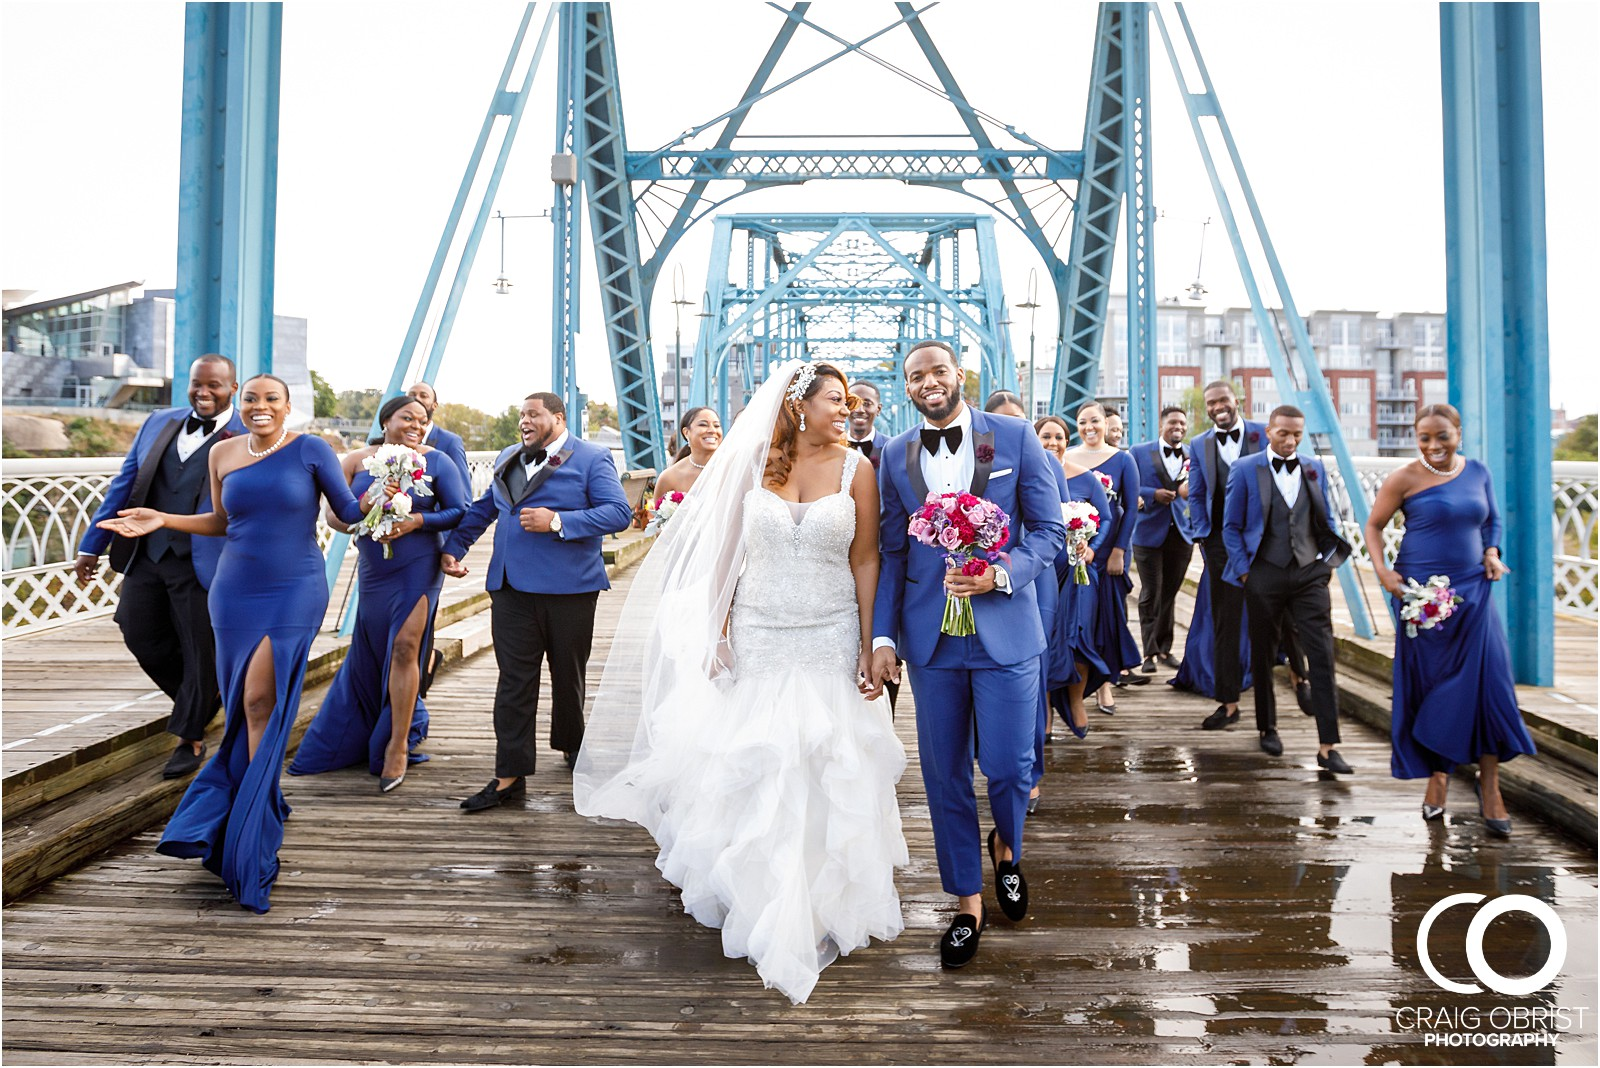 Stratton Hall Chattanooga Walnut Street Bridge Wedding Portraits_0028.jpg